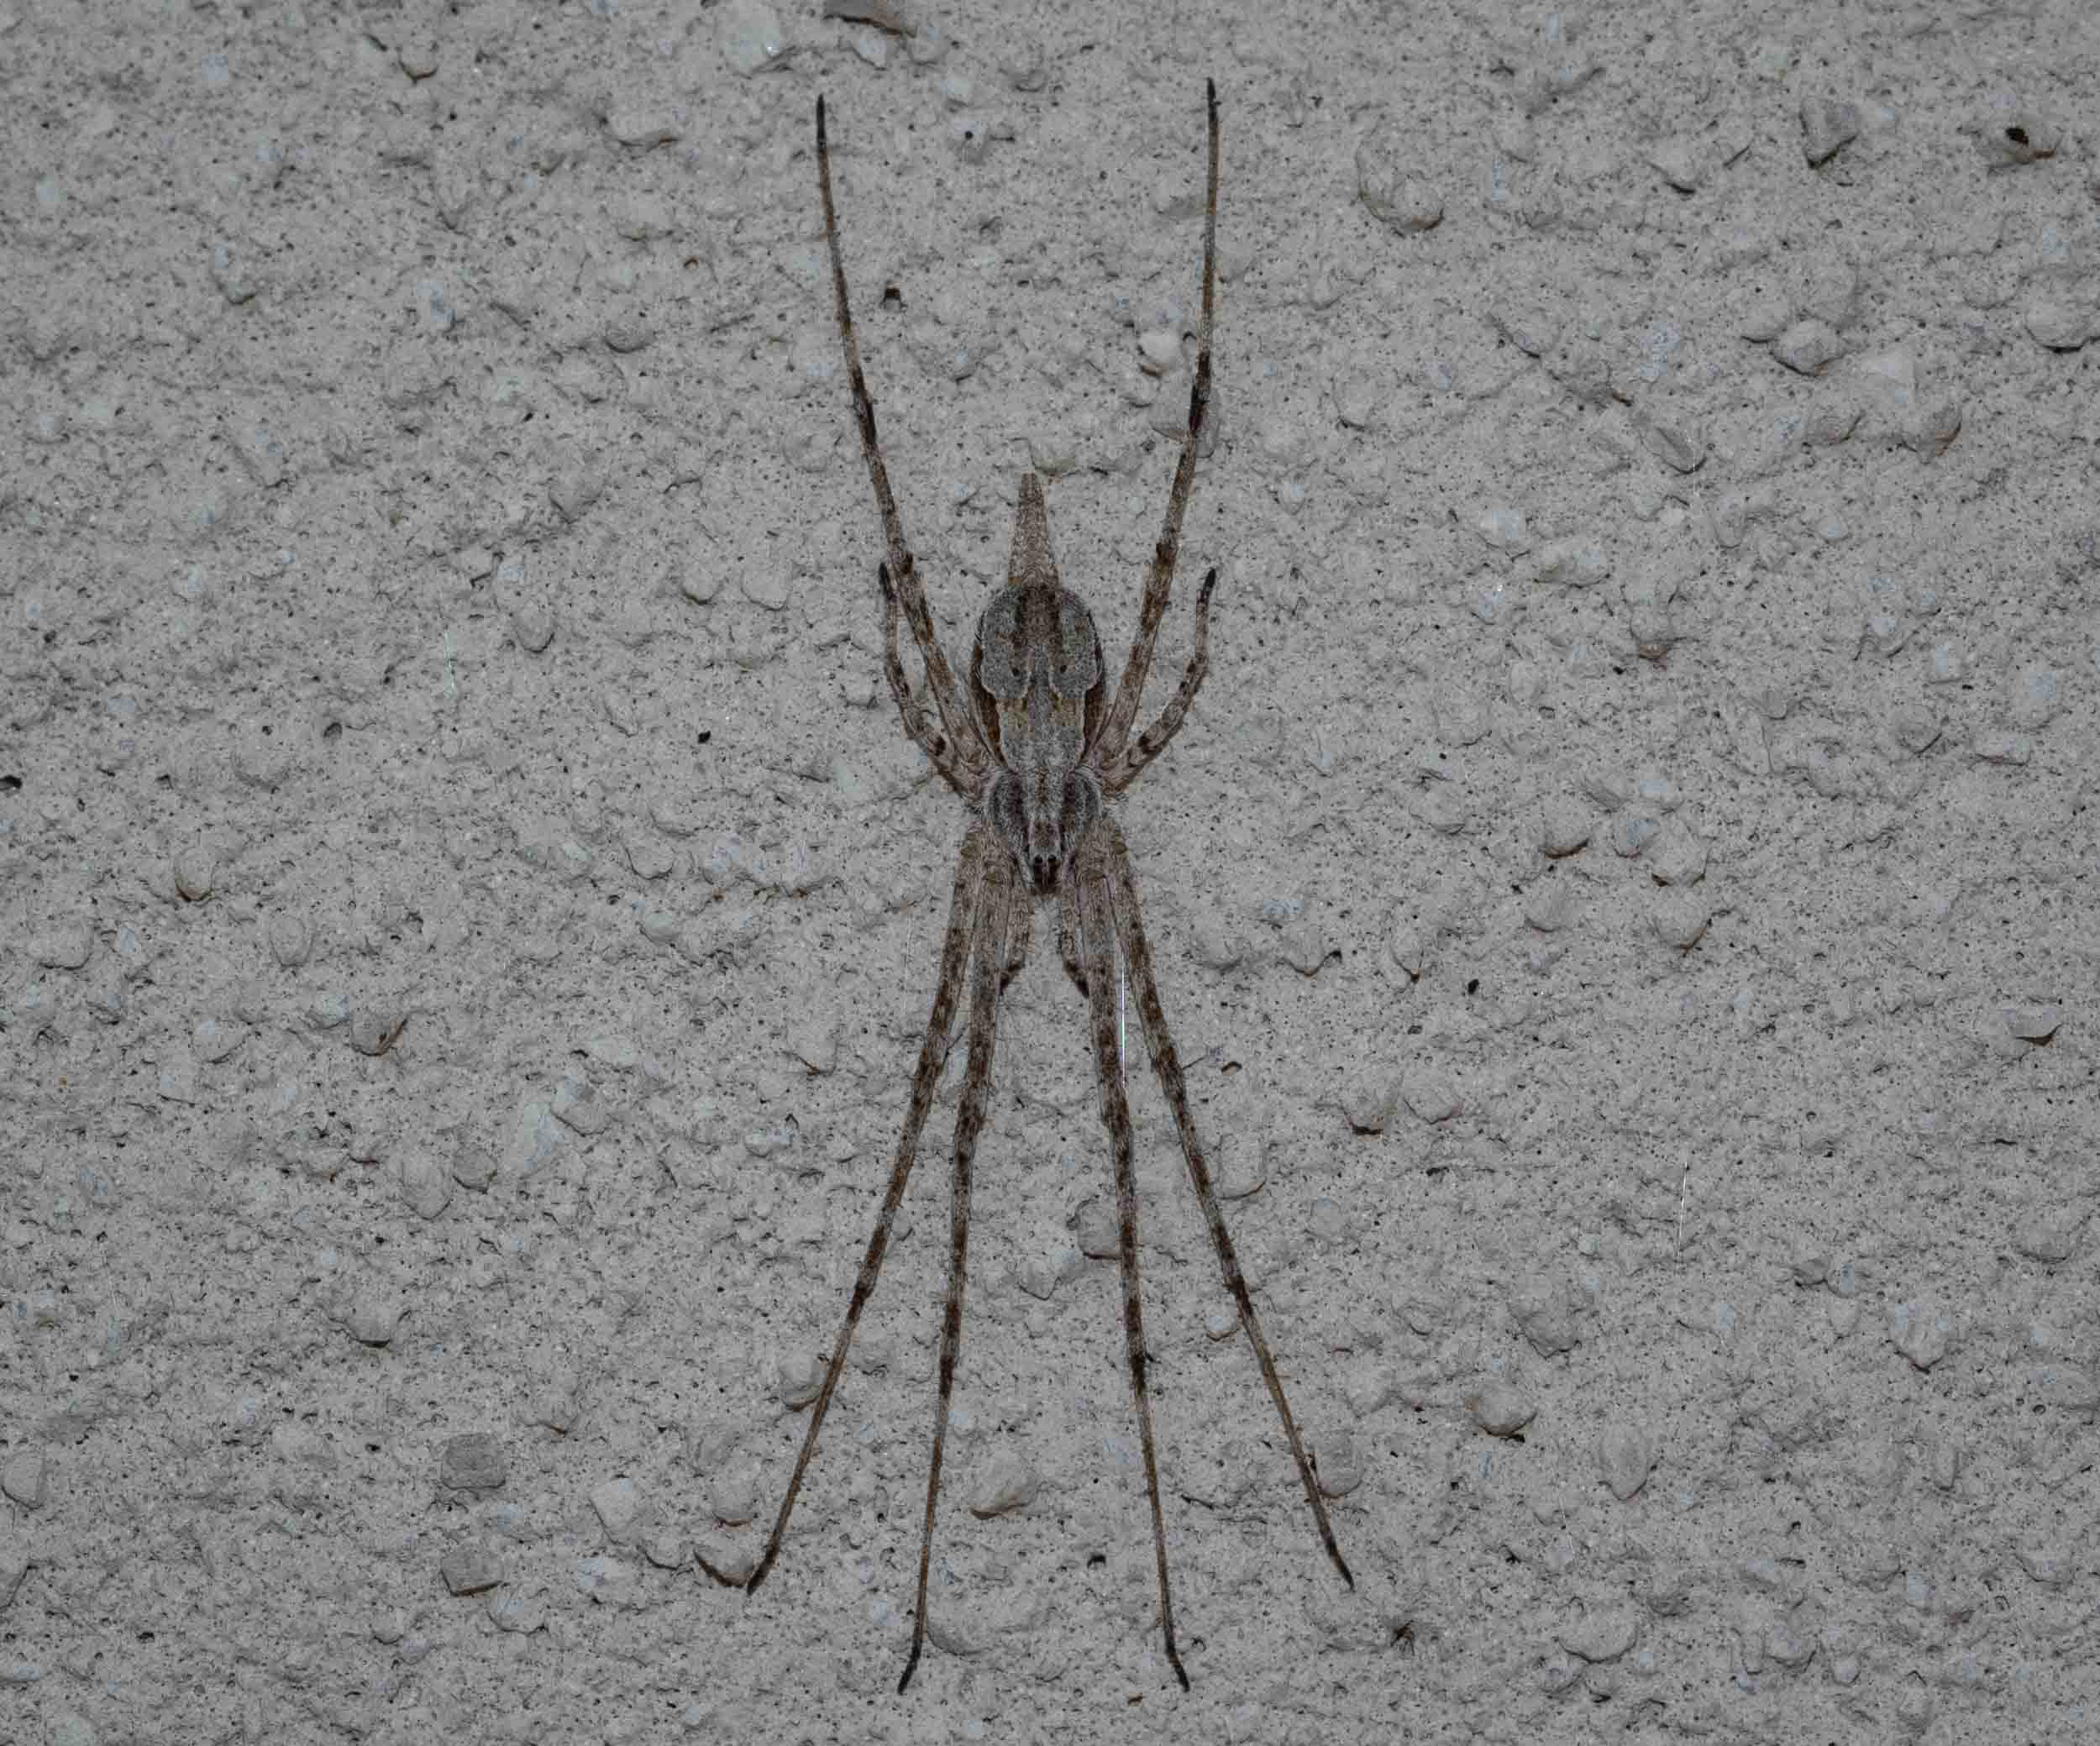 Now back in the usual spot on the wall of the house, but this Two-tailed Spider seems darker than usual. They are reported to  change colour  to blend in with their surroundings, so perhaps it will lighten up again now that it's back home. Family: Hersiliidae